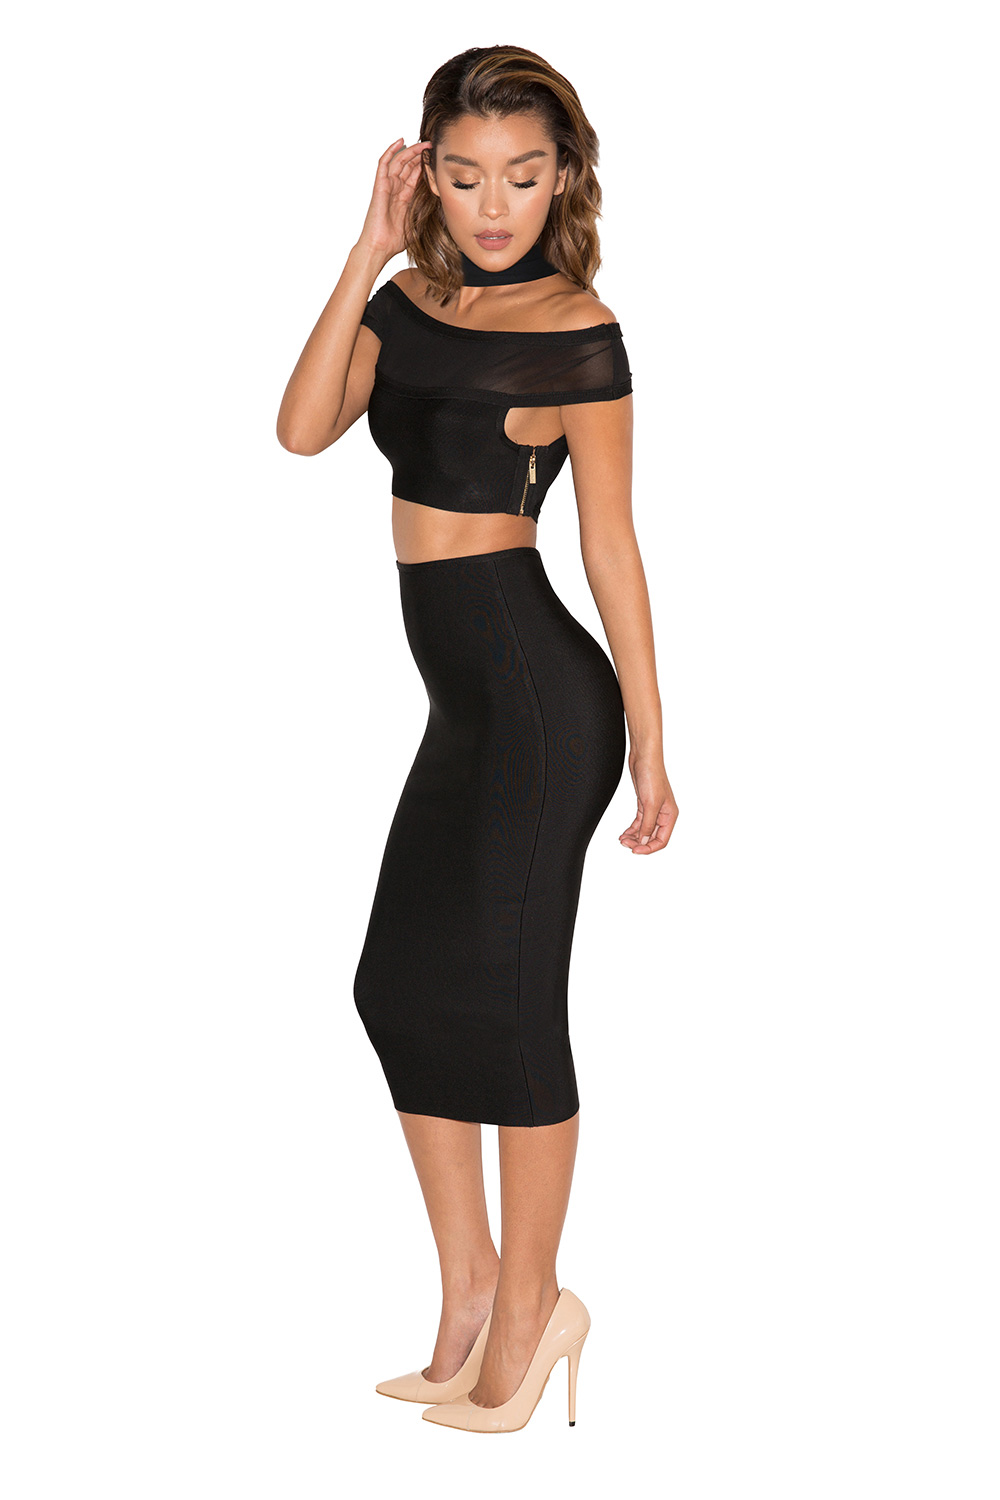 396c4089b3c5f6 Roche Black Bandage and Mesh Off Shoulder Two Piece. View larger image.  View larger image